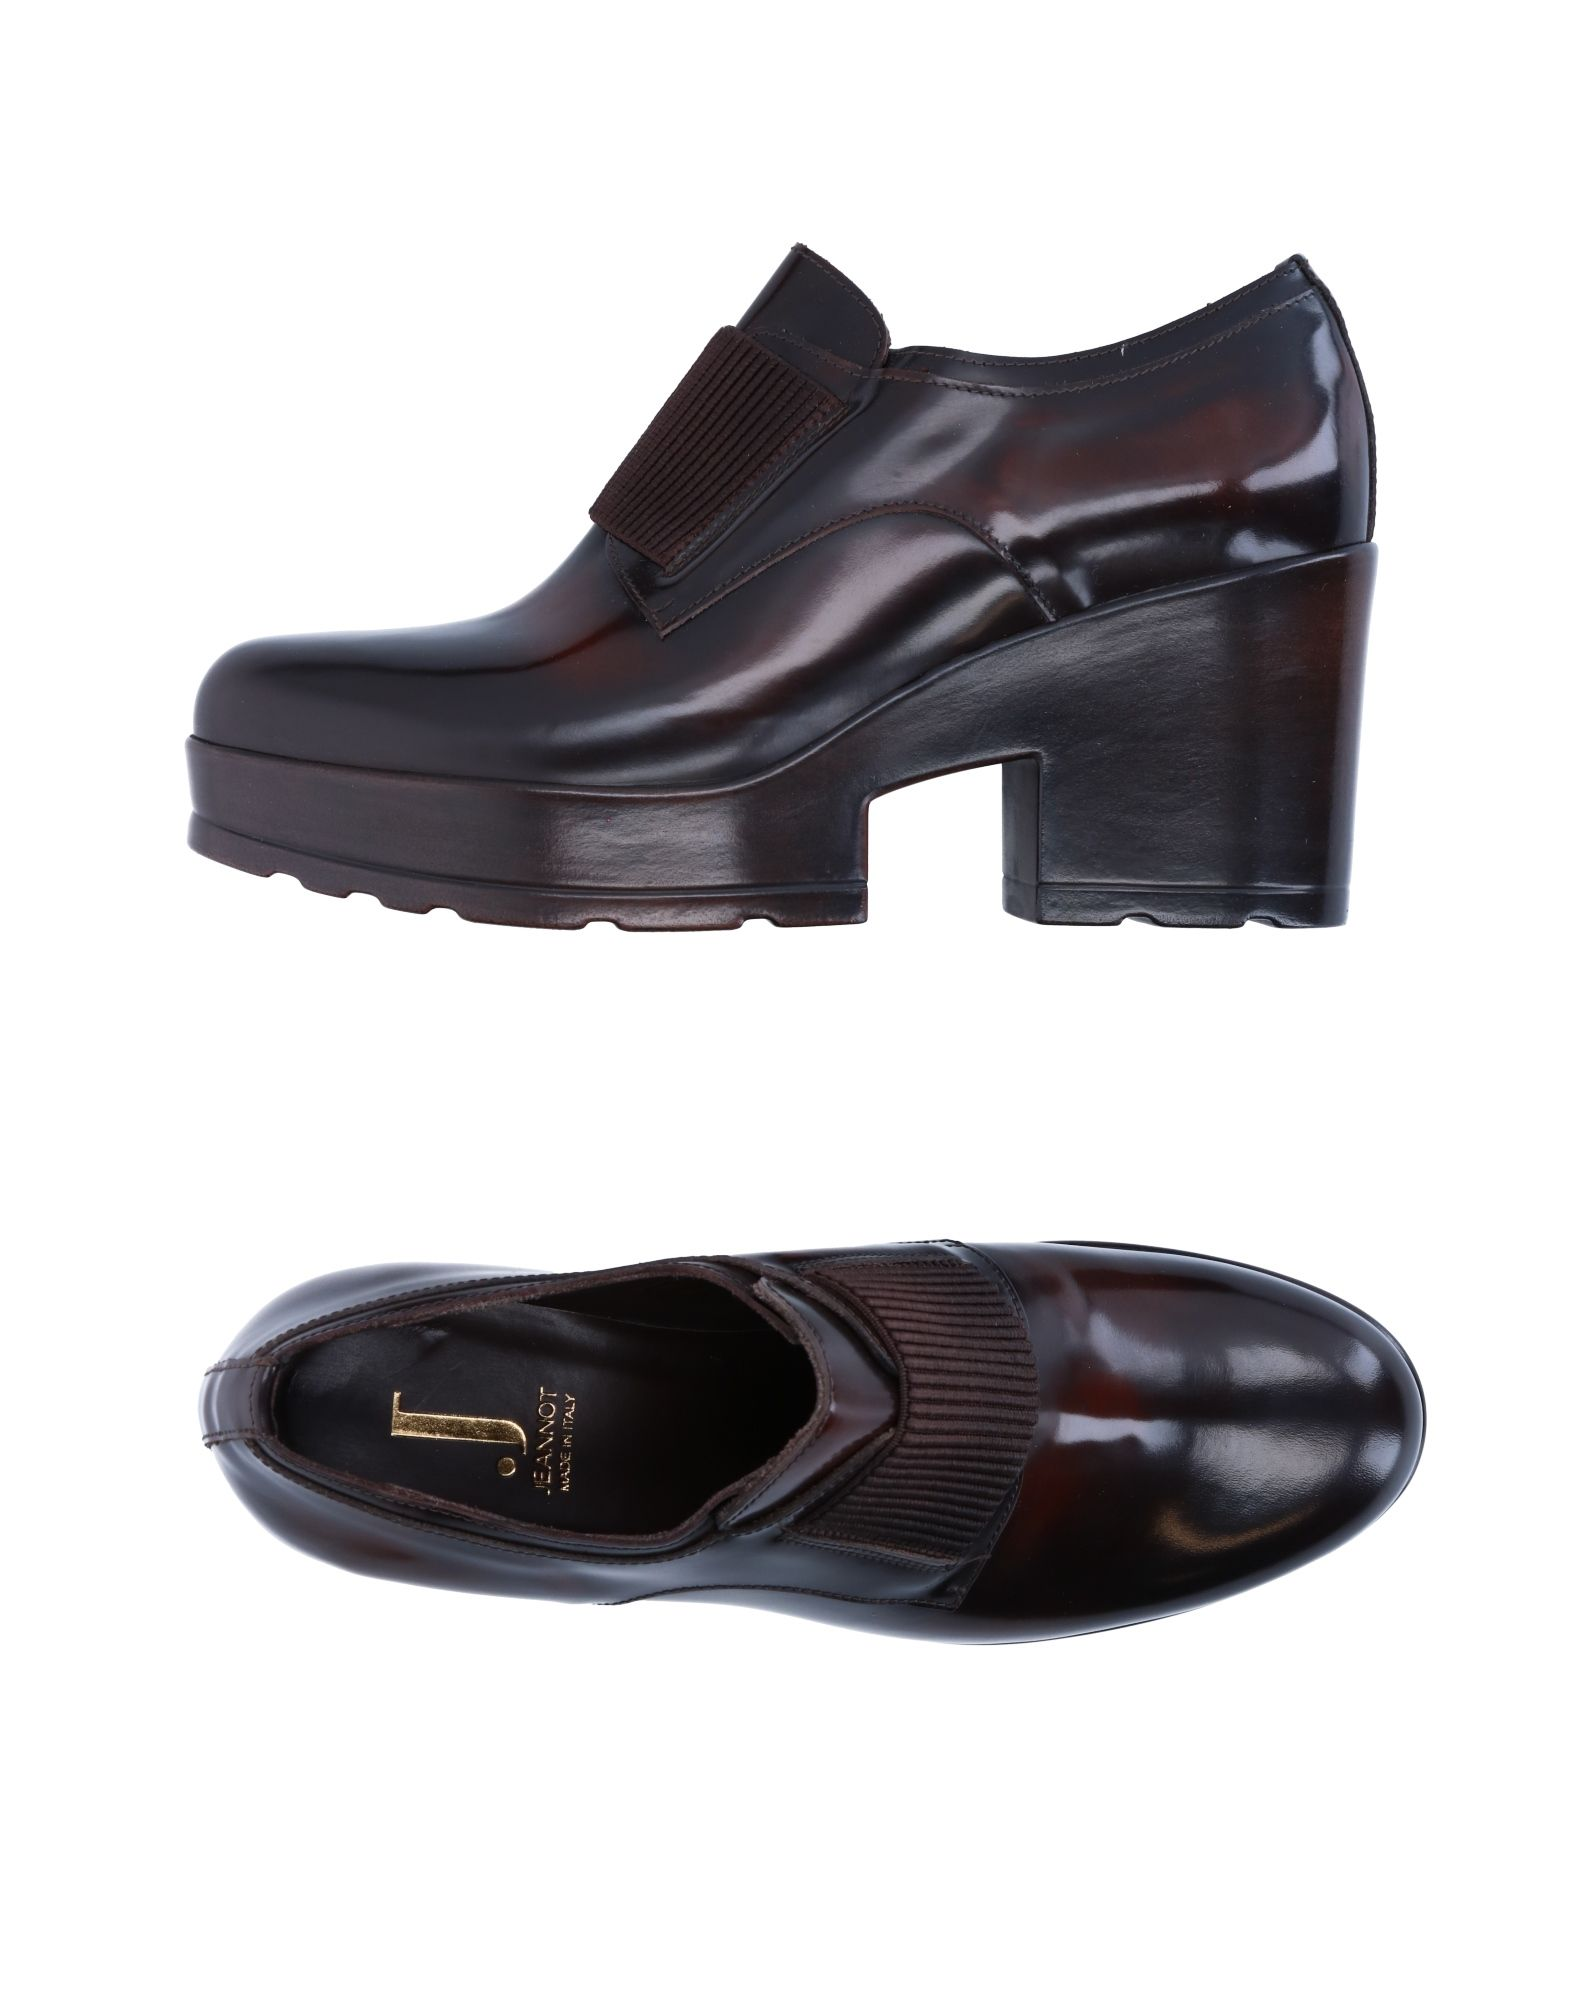 Cheap Sale Online Cheap Sale From China FOOTWEAR - Loafers Jeannot Cheap Manchester Great Sale Discount Nicekicks Cheap Exclusive LOy596Mwmc